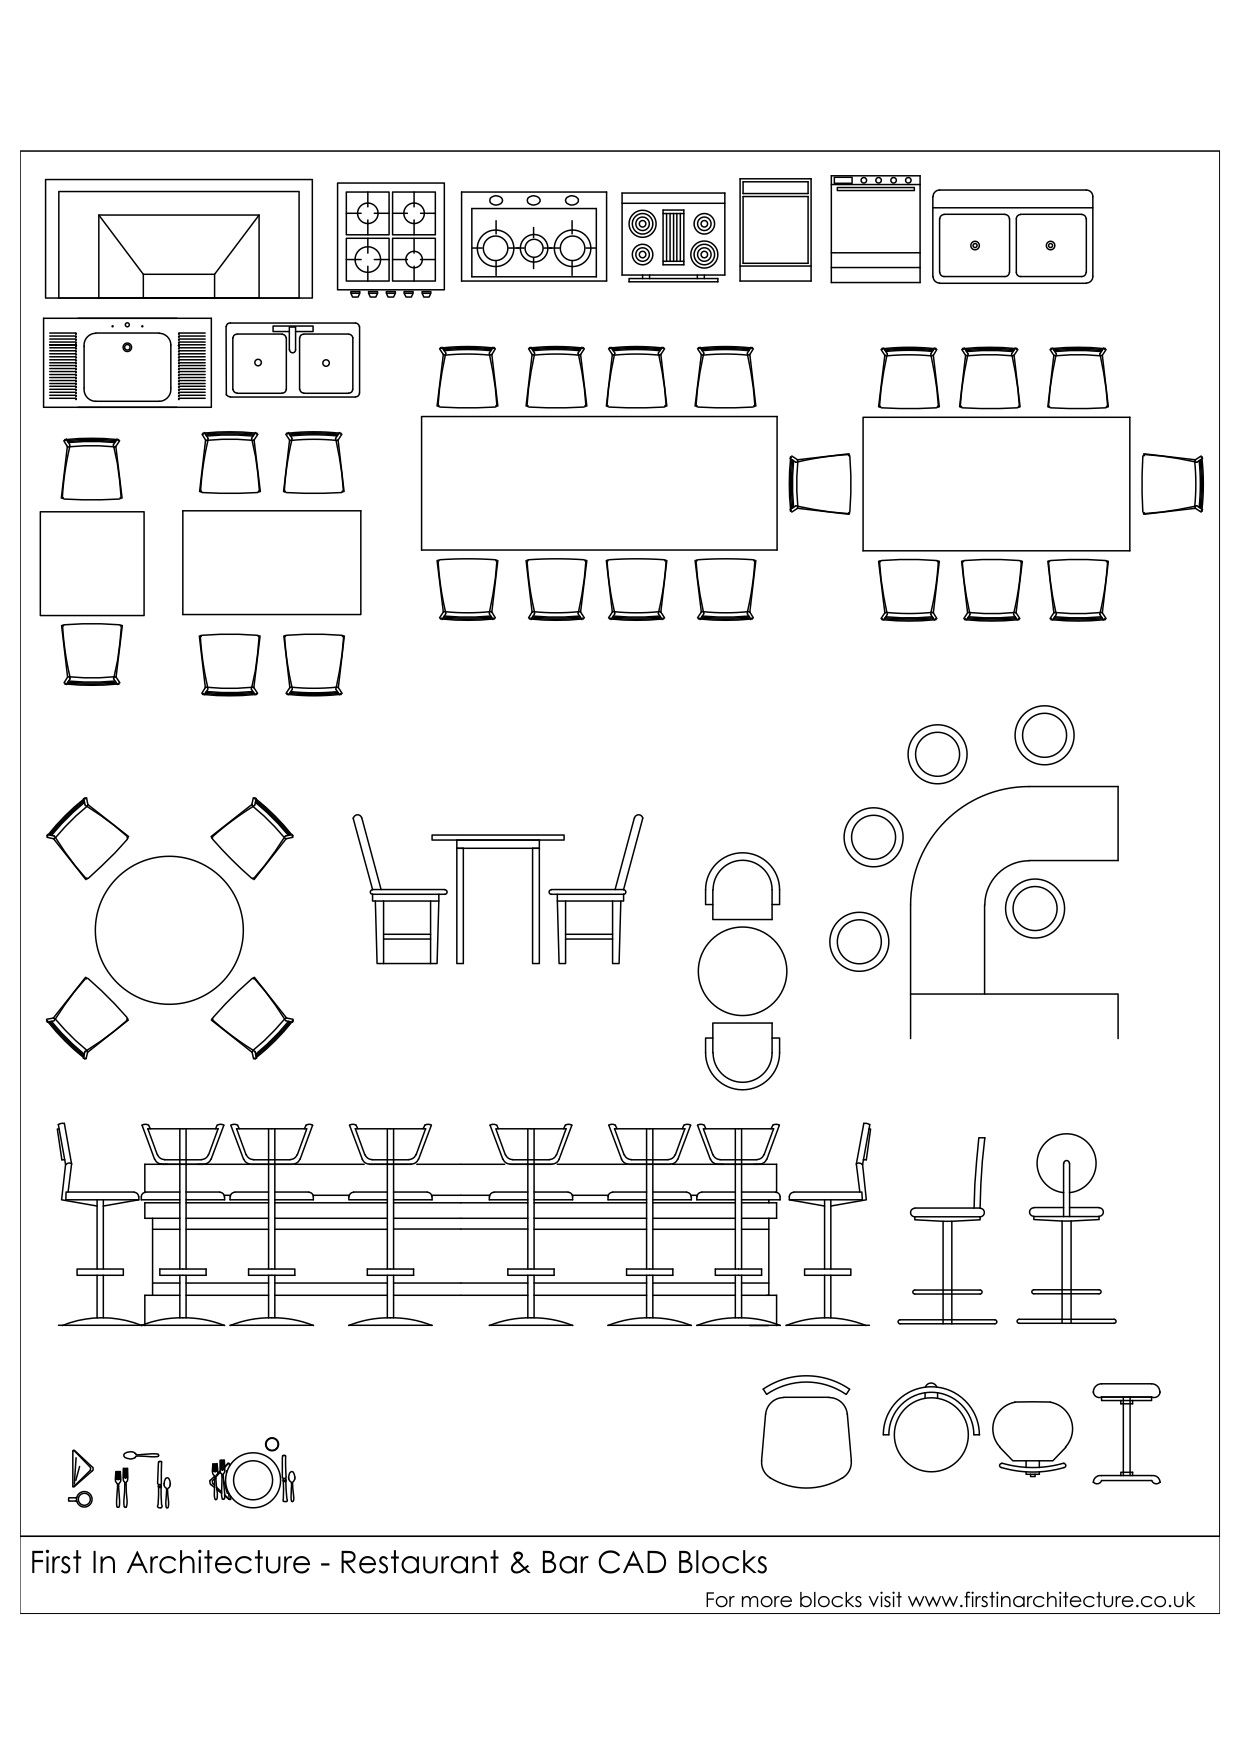 medium resolution of here is another set of free cad blocks from the first in architecture cad block database we hope you find them useful please feel